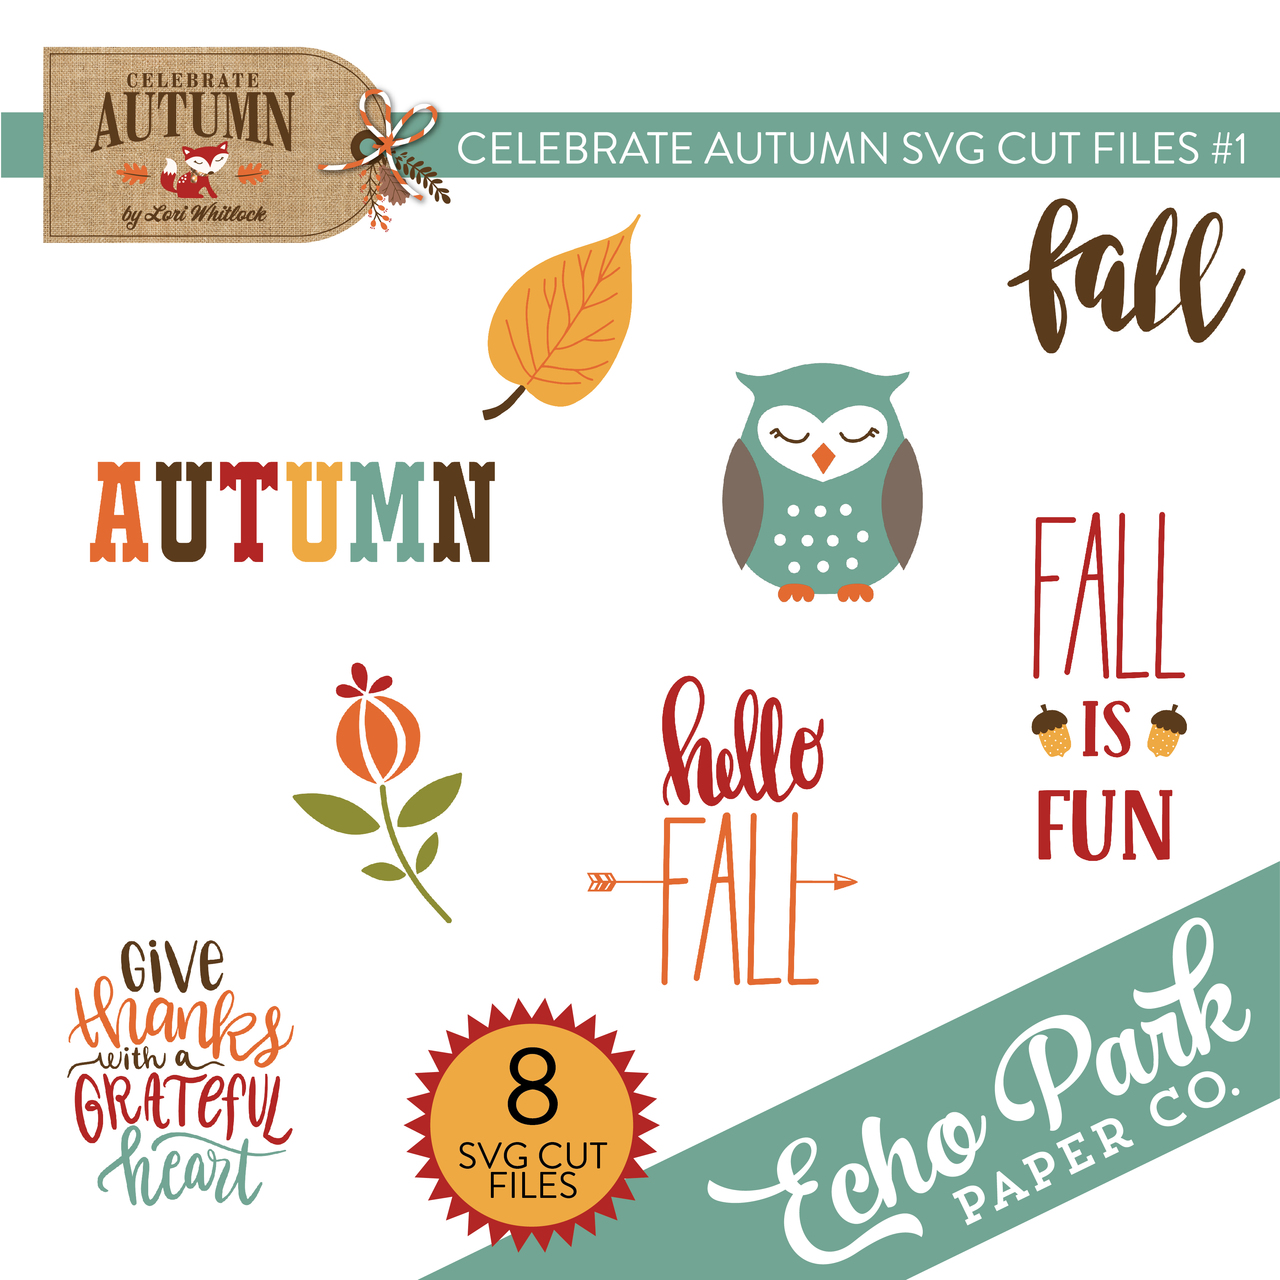 Celebrate Autumn SVG Cut Files #1